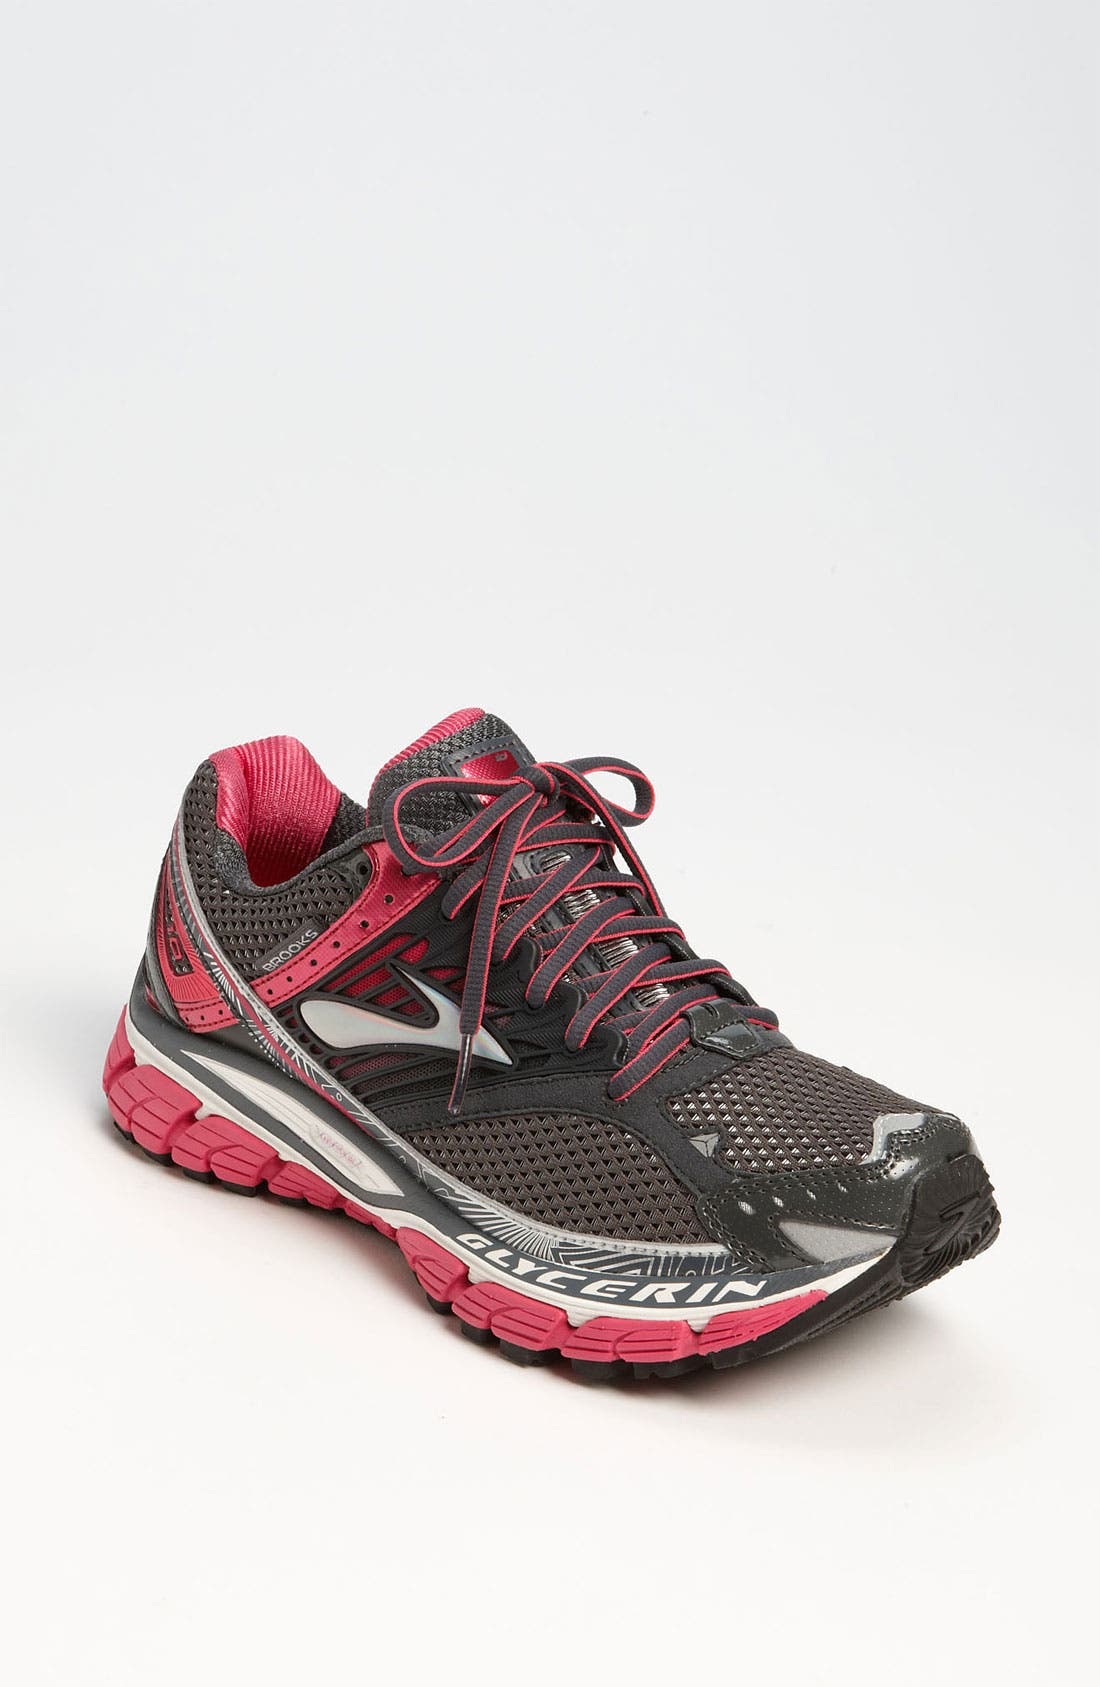 Main Image - Brooks 'Glycerin 10' Running Shoe (Women) (Regular Retail Price: $139.95)